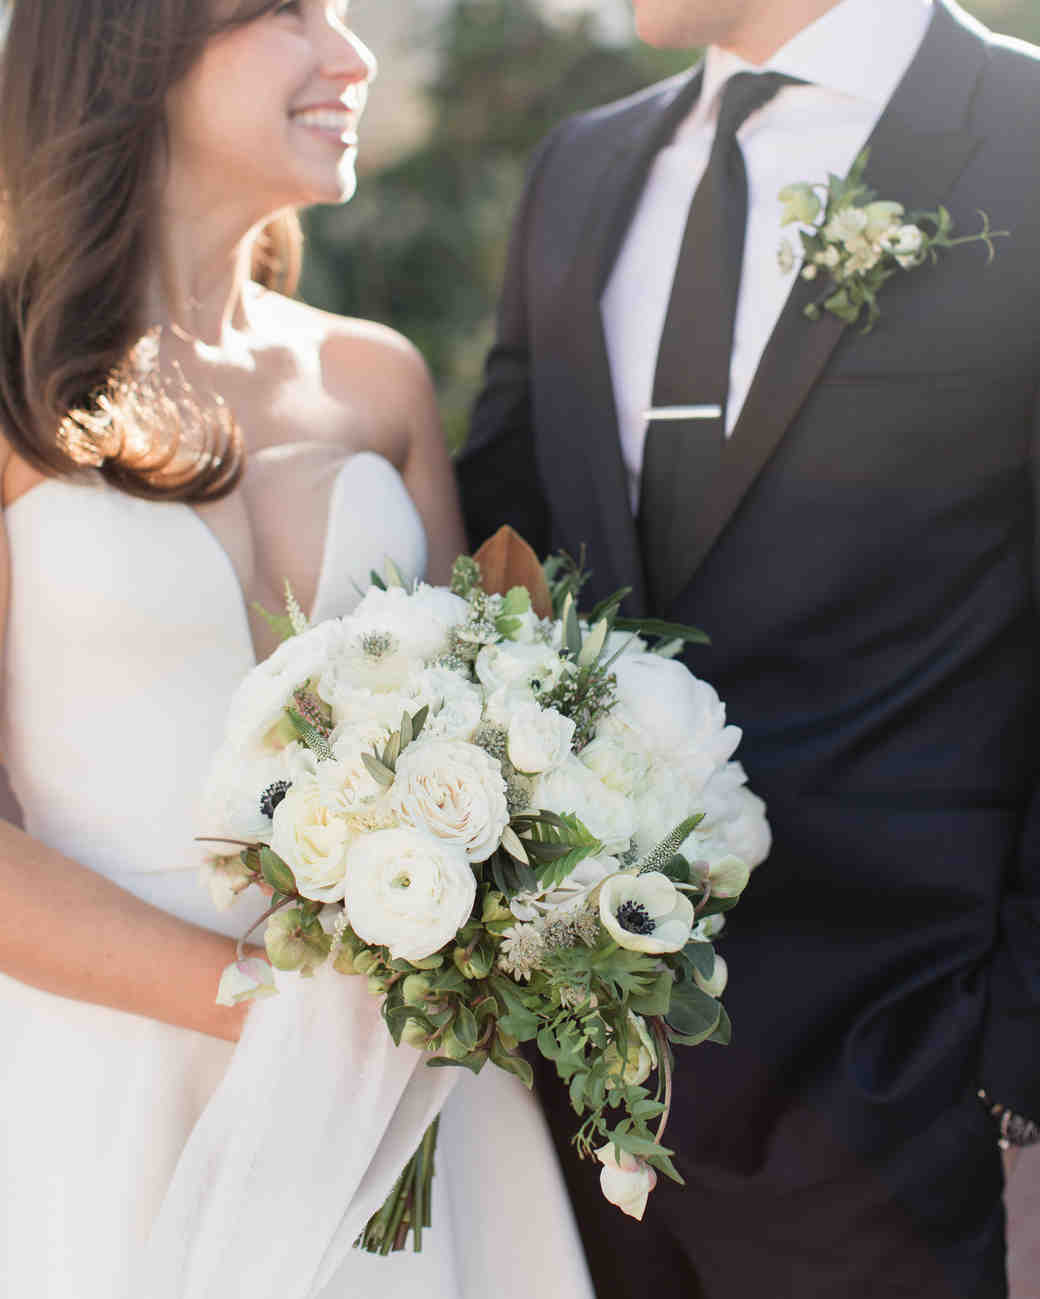 All-White Bouquet with Ranunculus, Anemones and Greenery